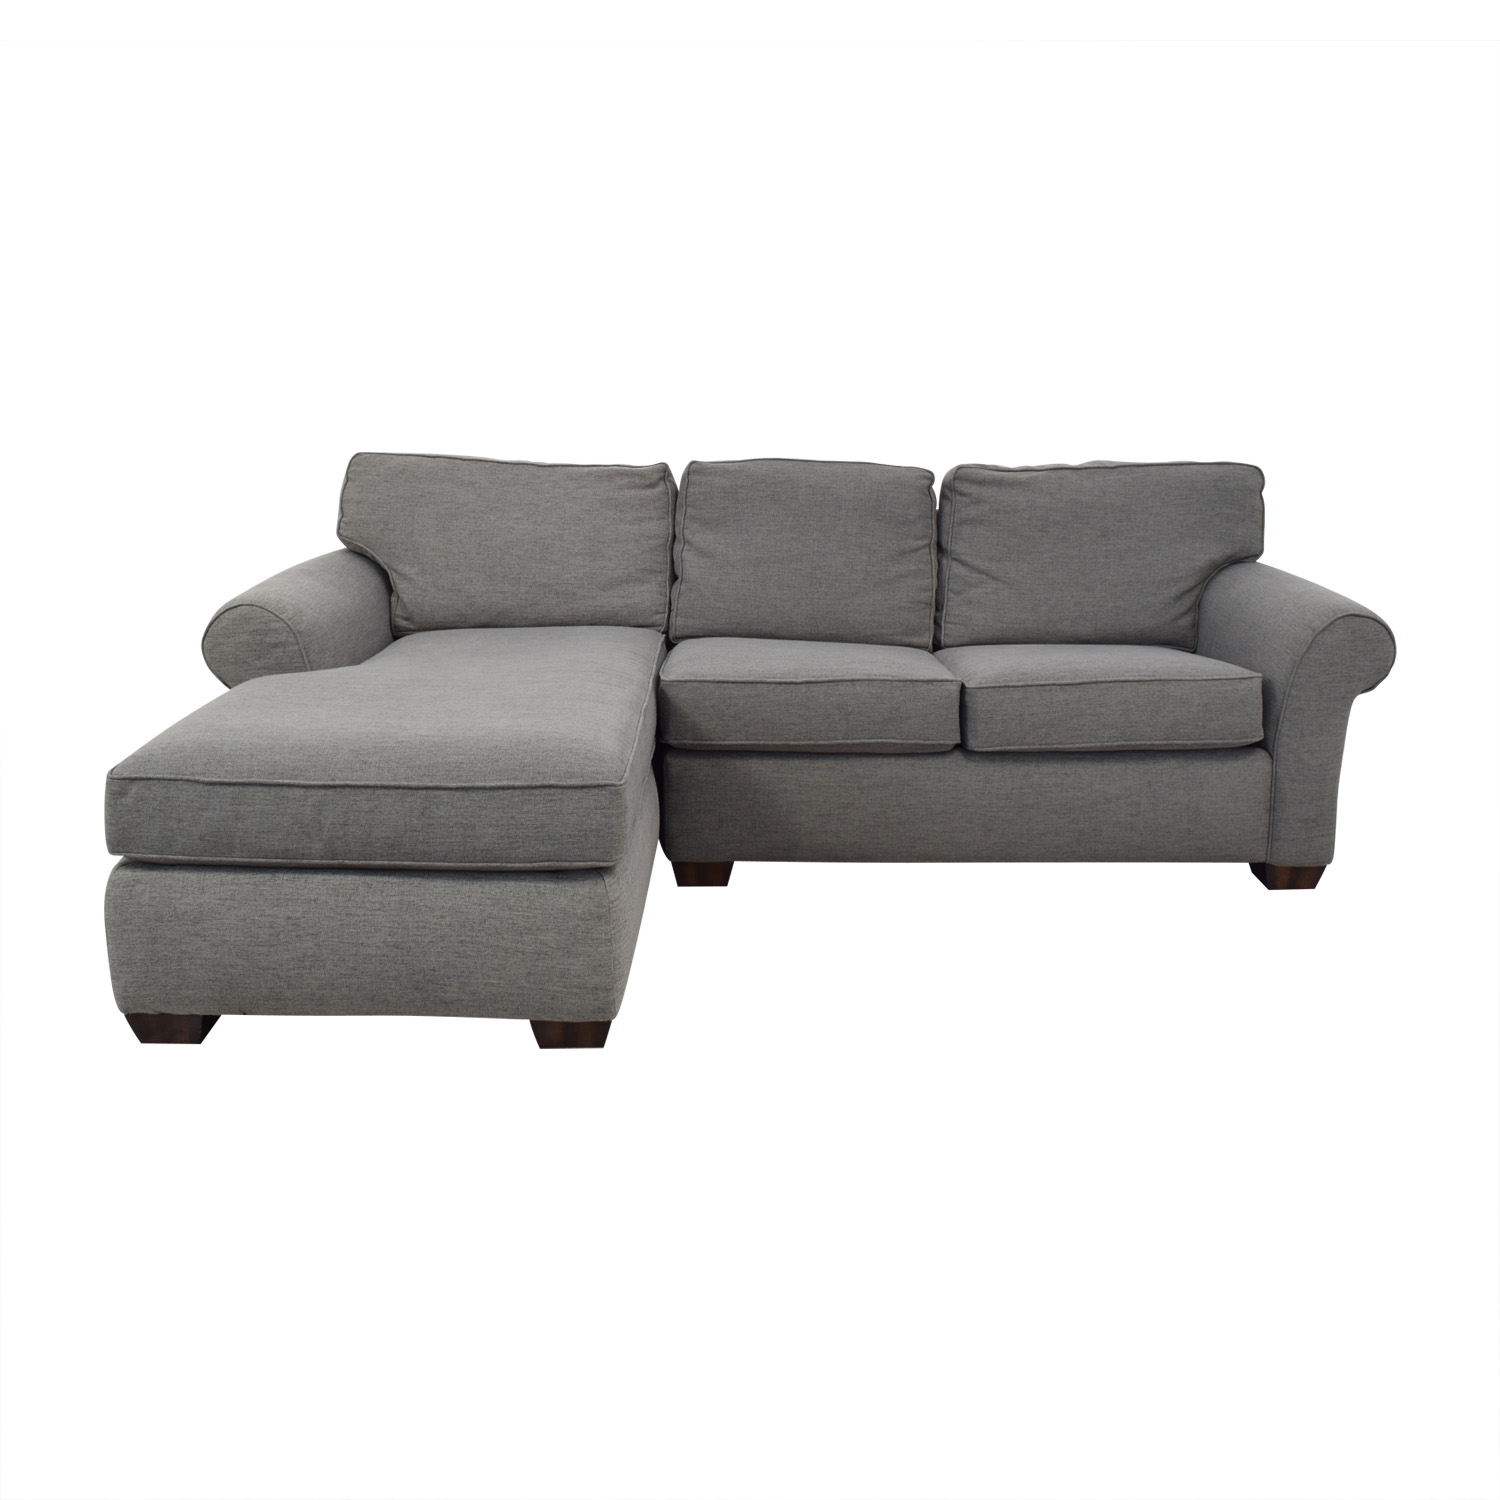 Flexsteel Grey Sectional Sofa with Chaise / Sofas